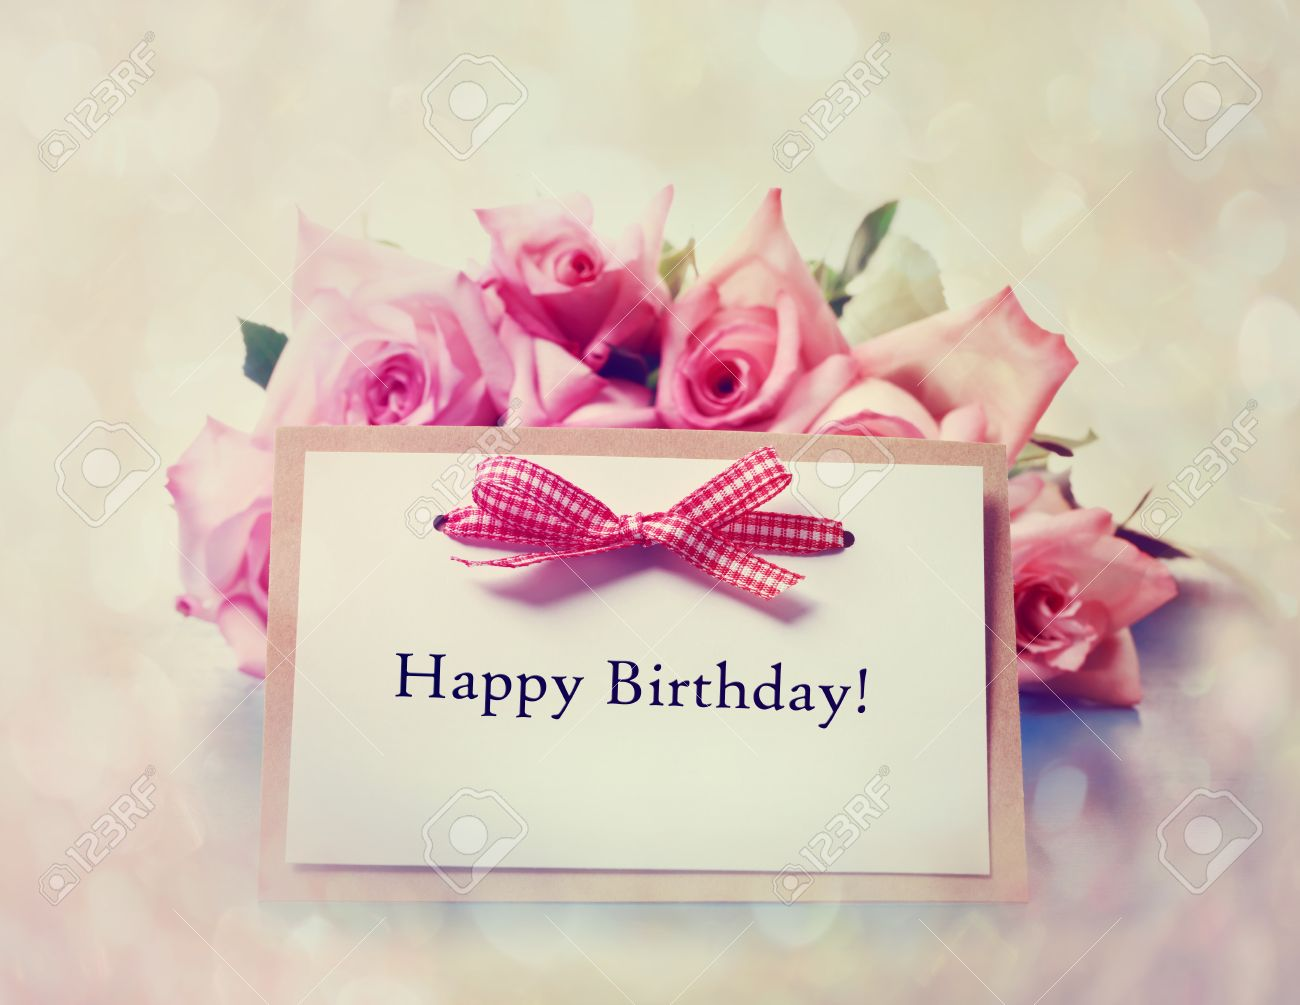 Happy birthday message card with retro pink roses stock photo happy birthday message card with retro pink roses stock photo 30106899 bookmarktalkfo Image collections